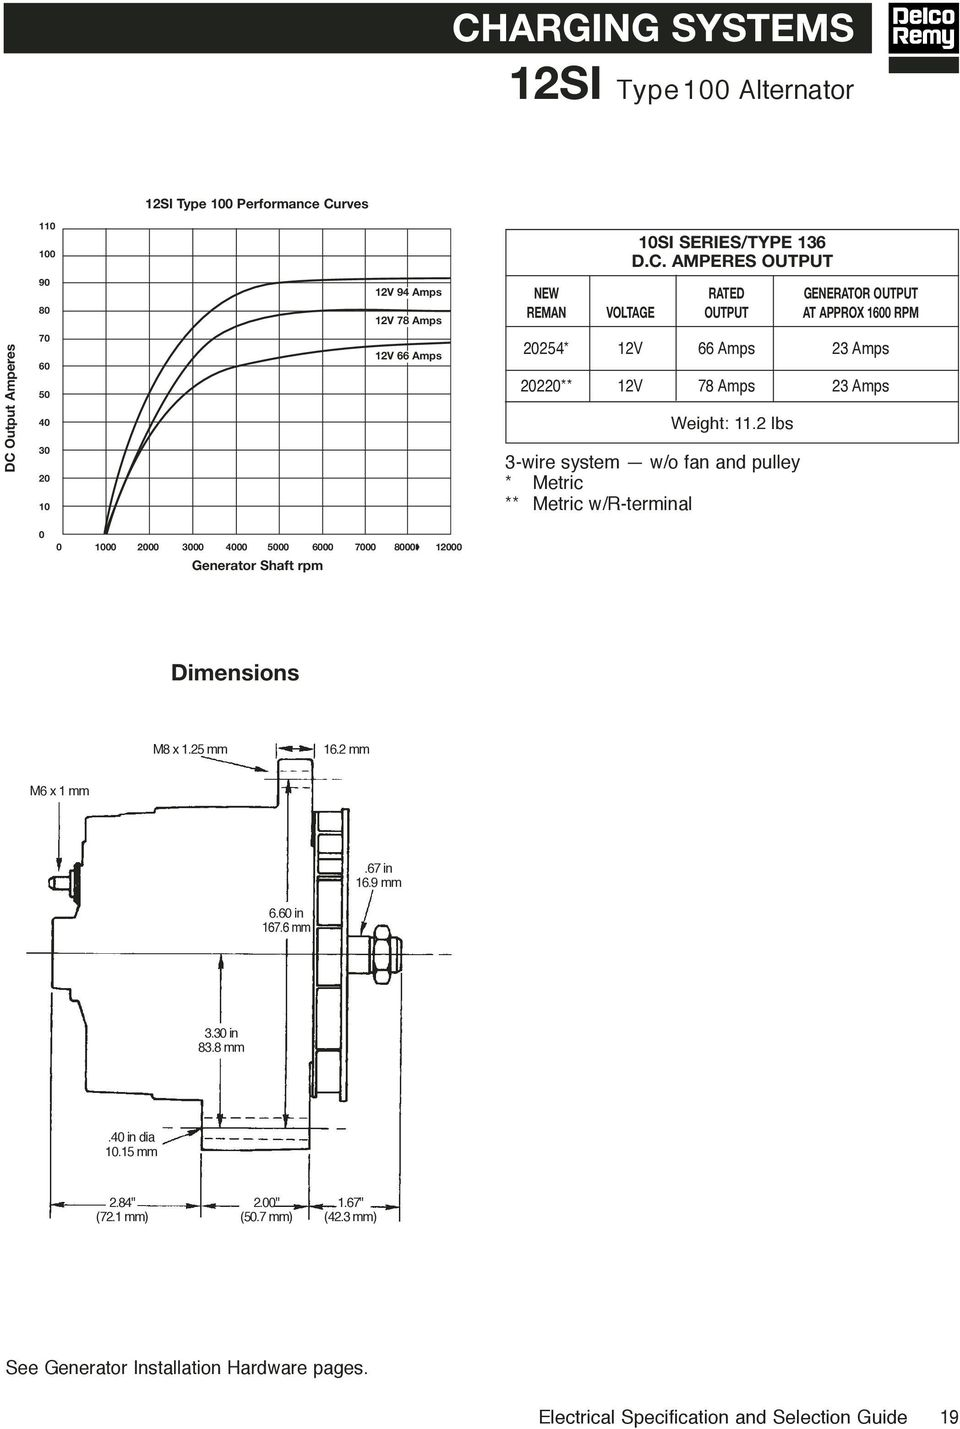 Electrical Specifications Selection Guide Pdf Delco Alternator Regulator F And R Terminals 2 Lbs 3 Wire System W O Fan Pulley Metric